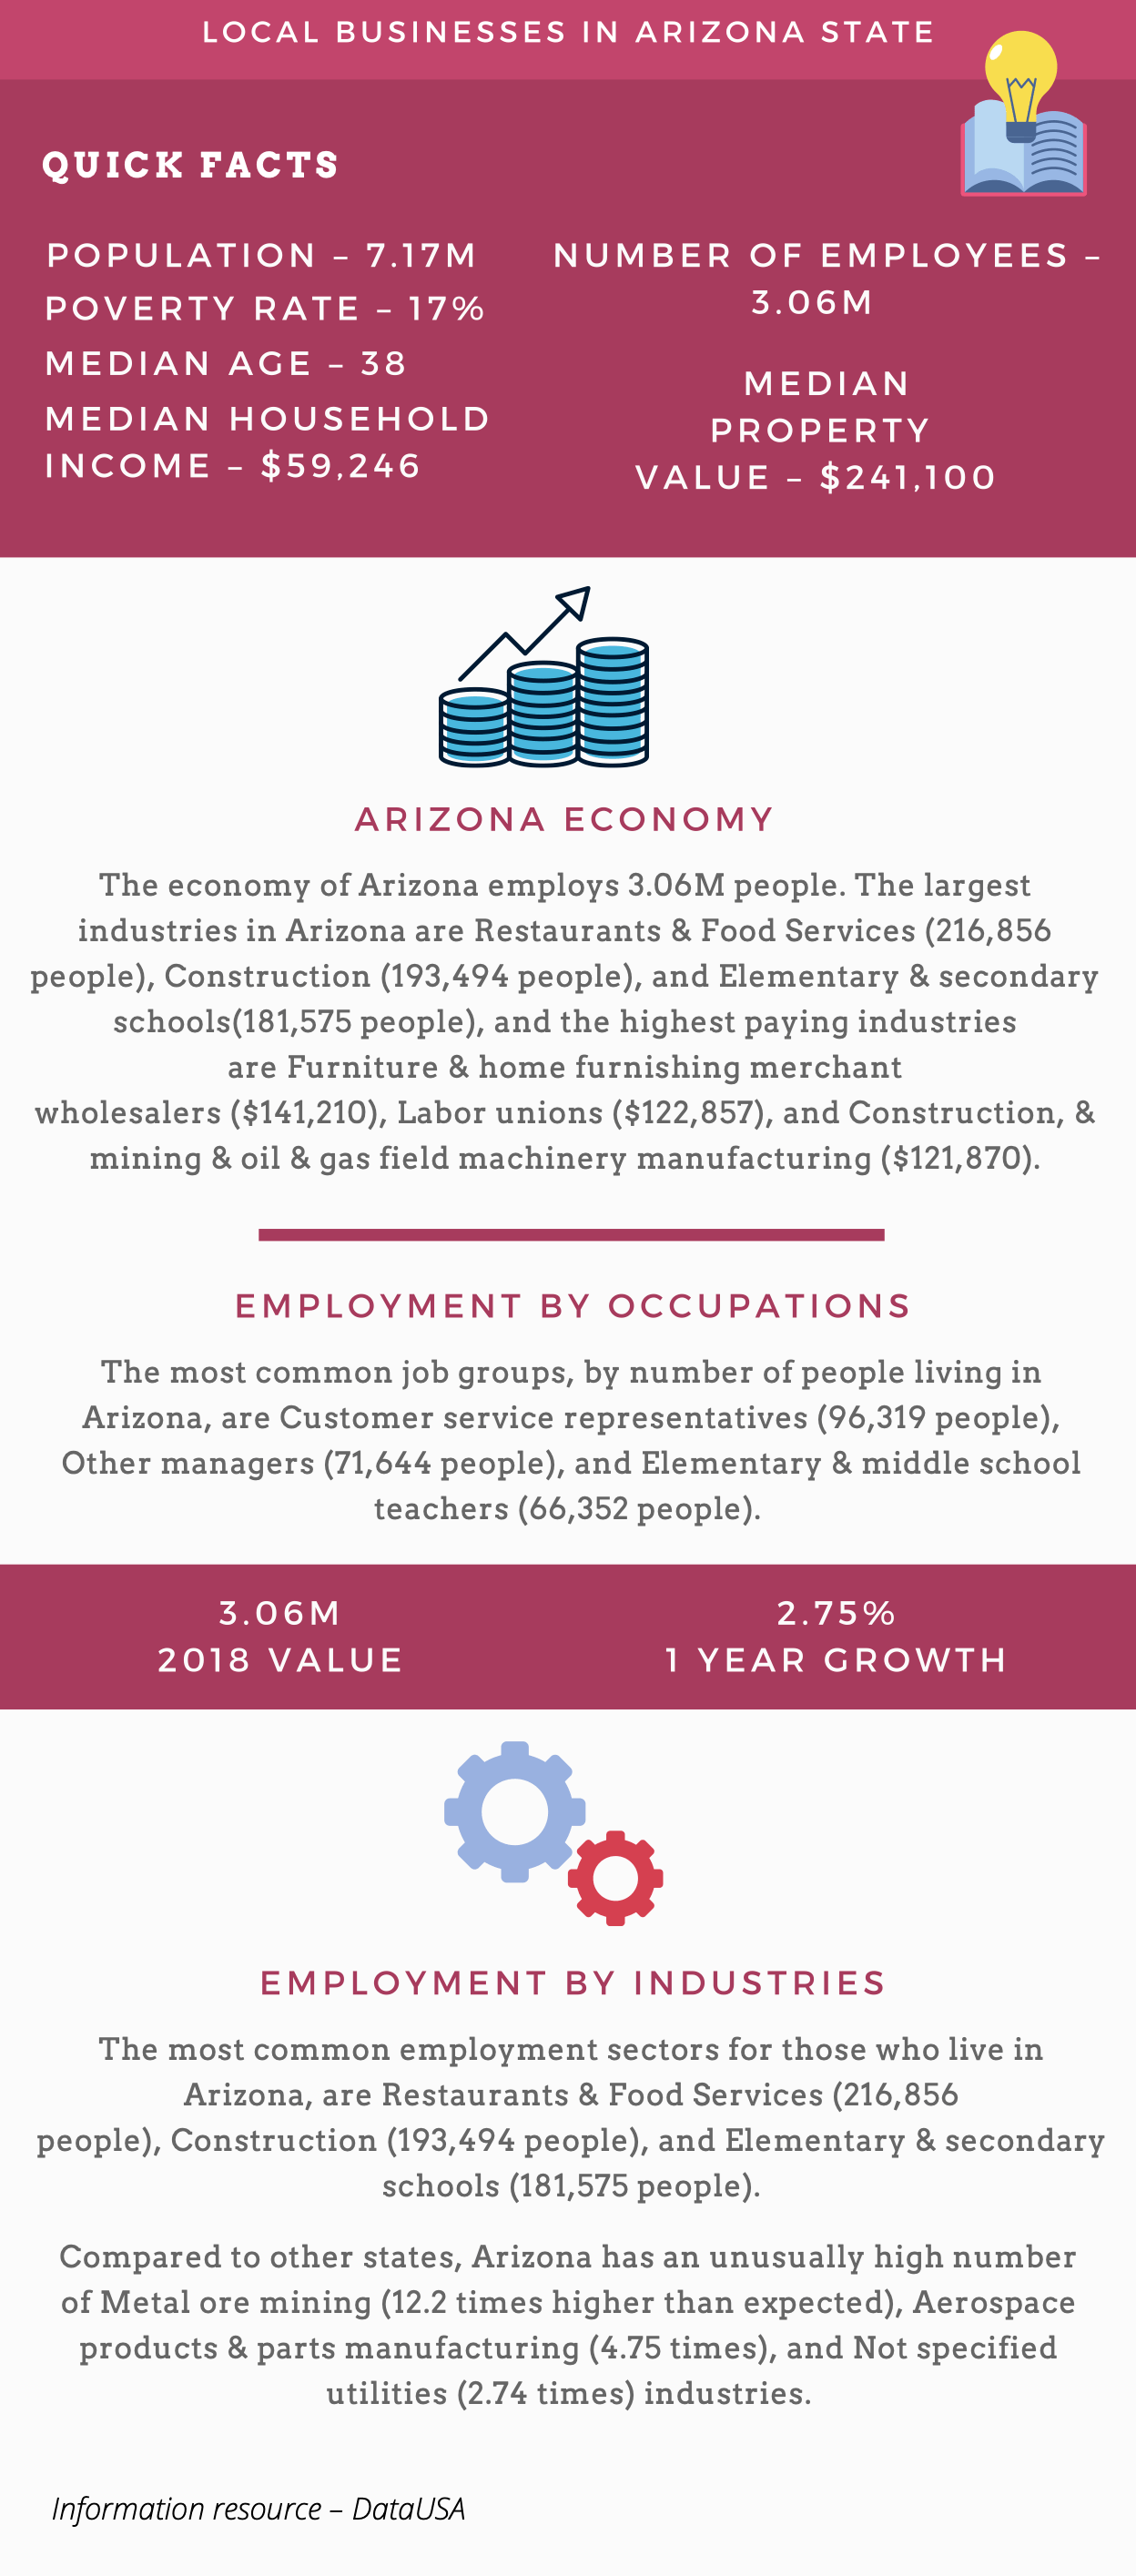 Arizona Businesses Statistical Data